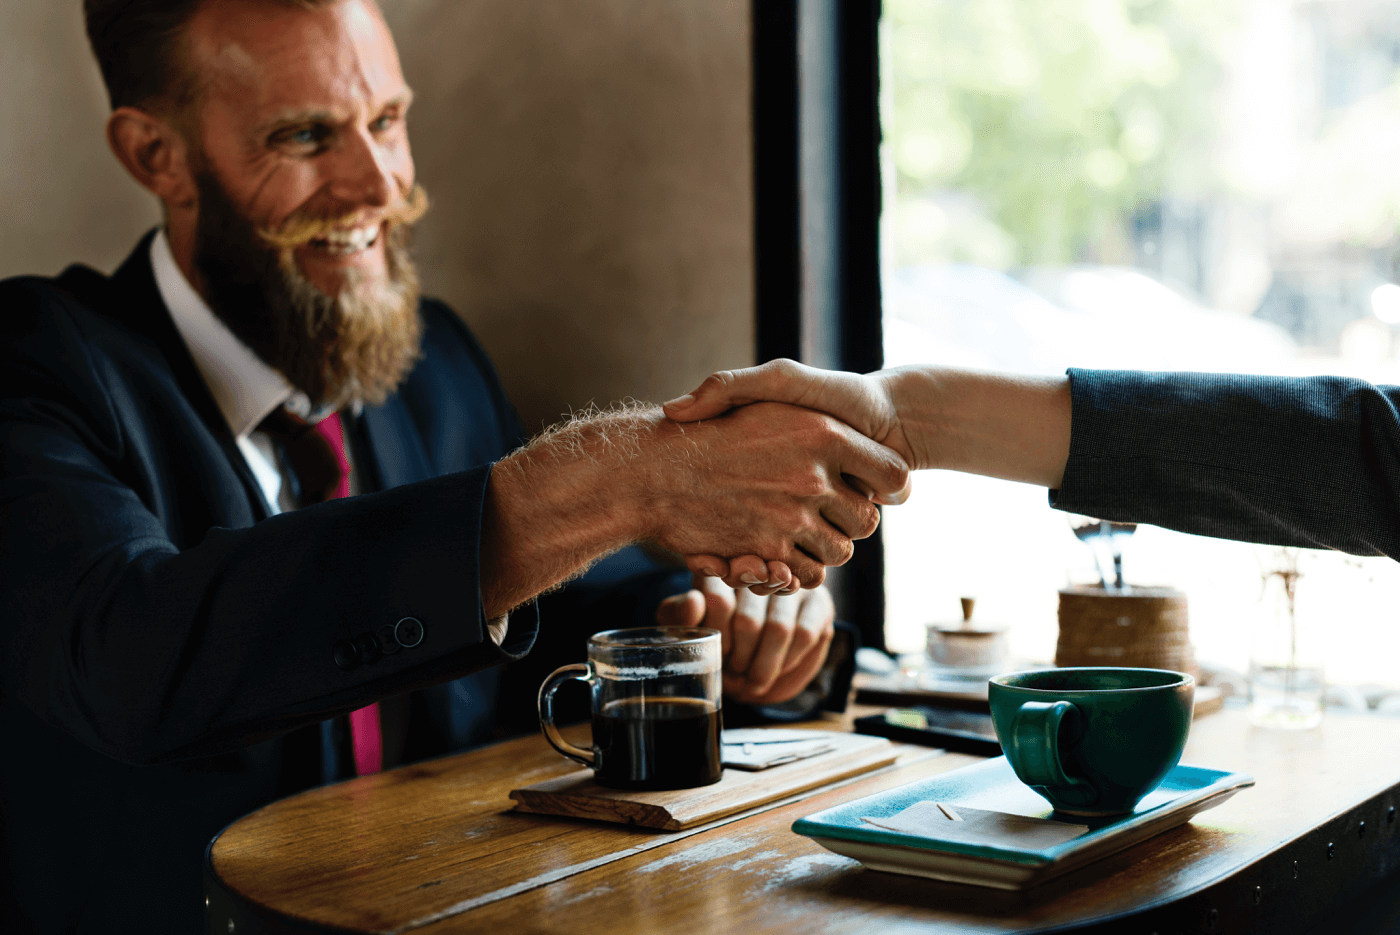 a man with a beard shaking hand with someone at the desk